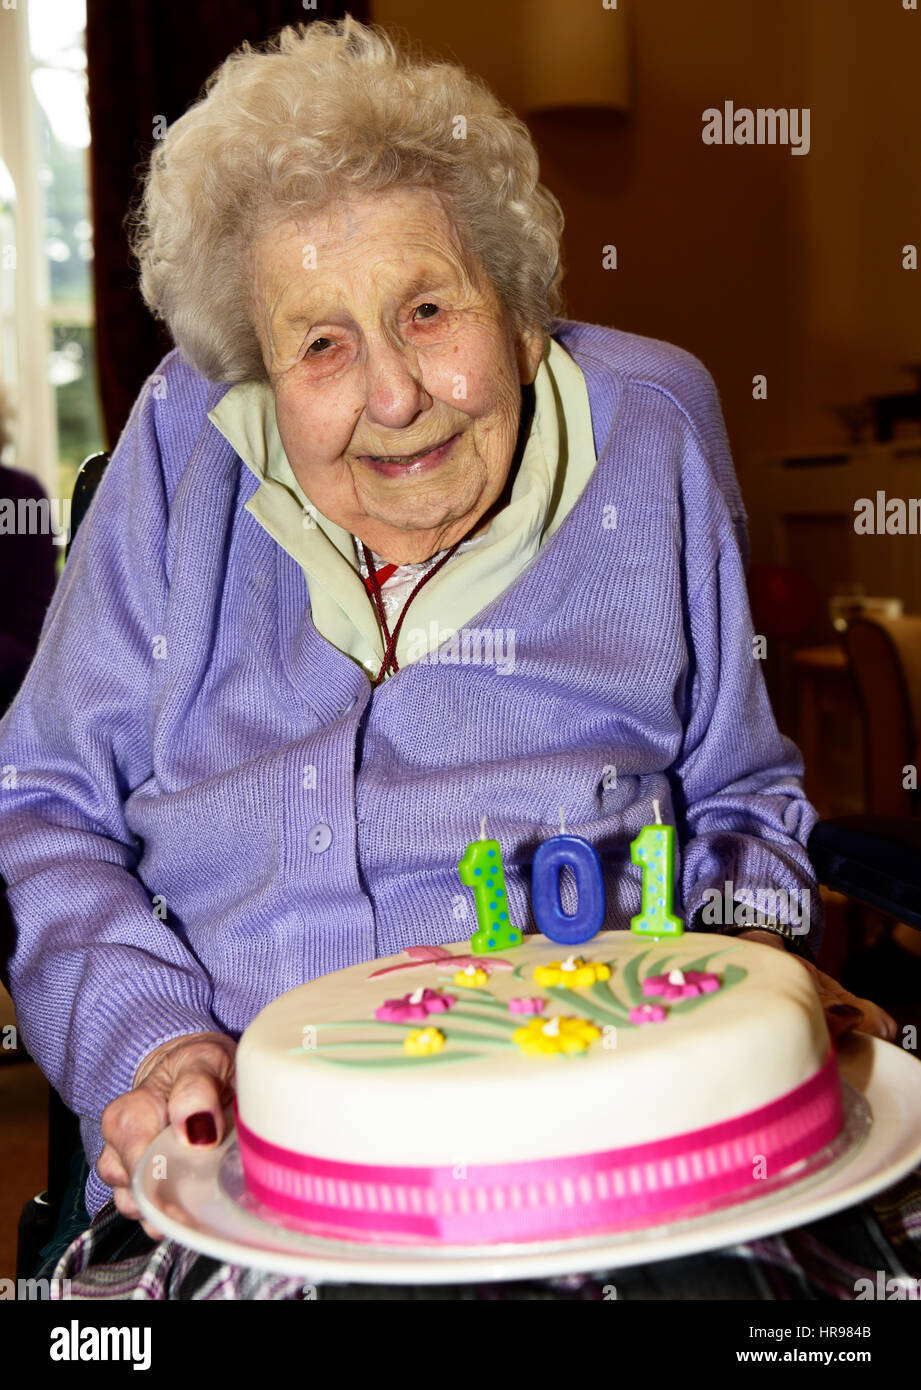 Elderly Woman In Wheelchair Holding Her Birthday Cake Celebrating 101 Years Residential Care